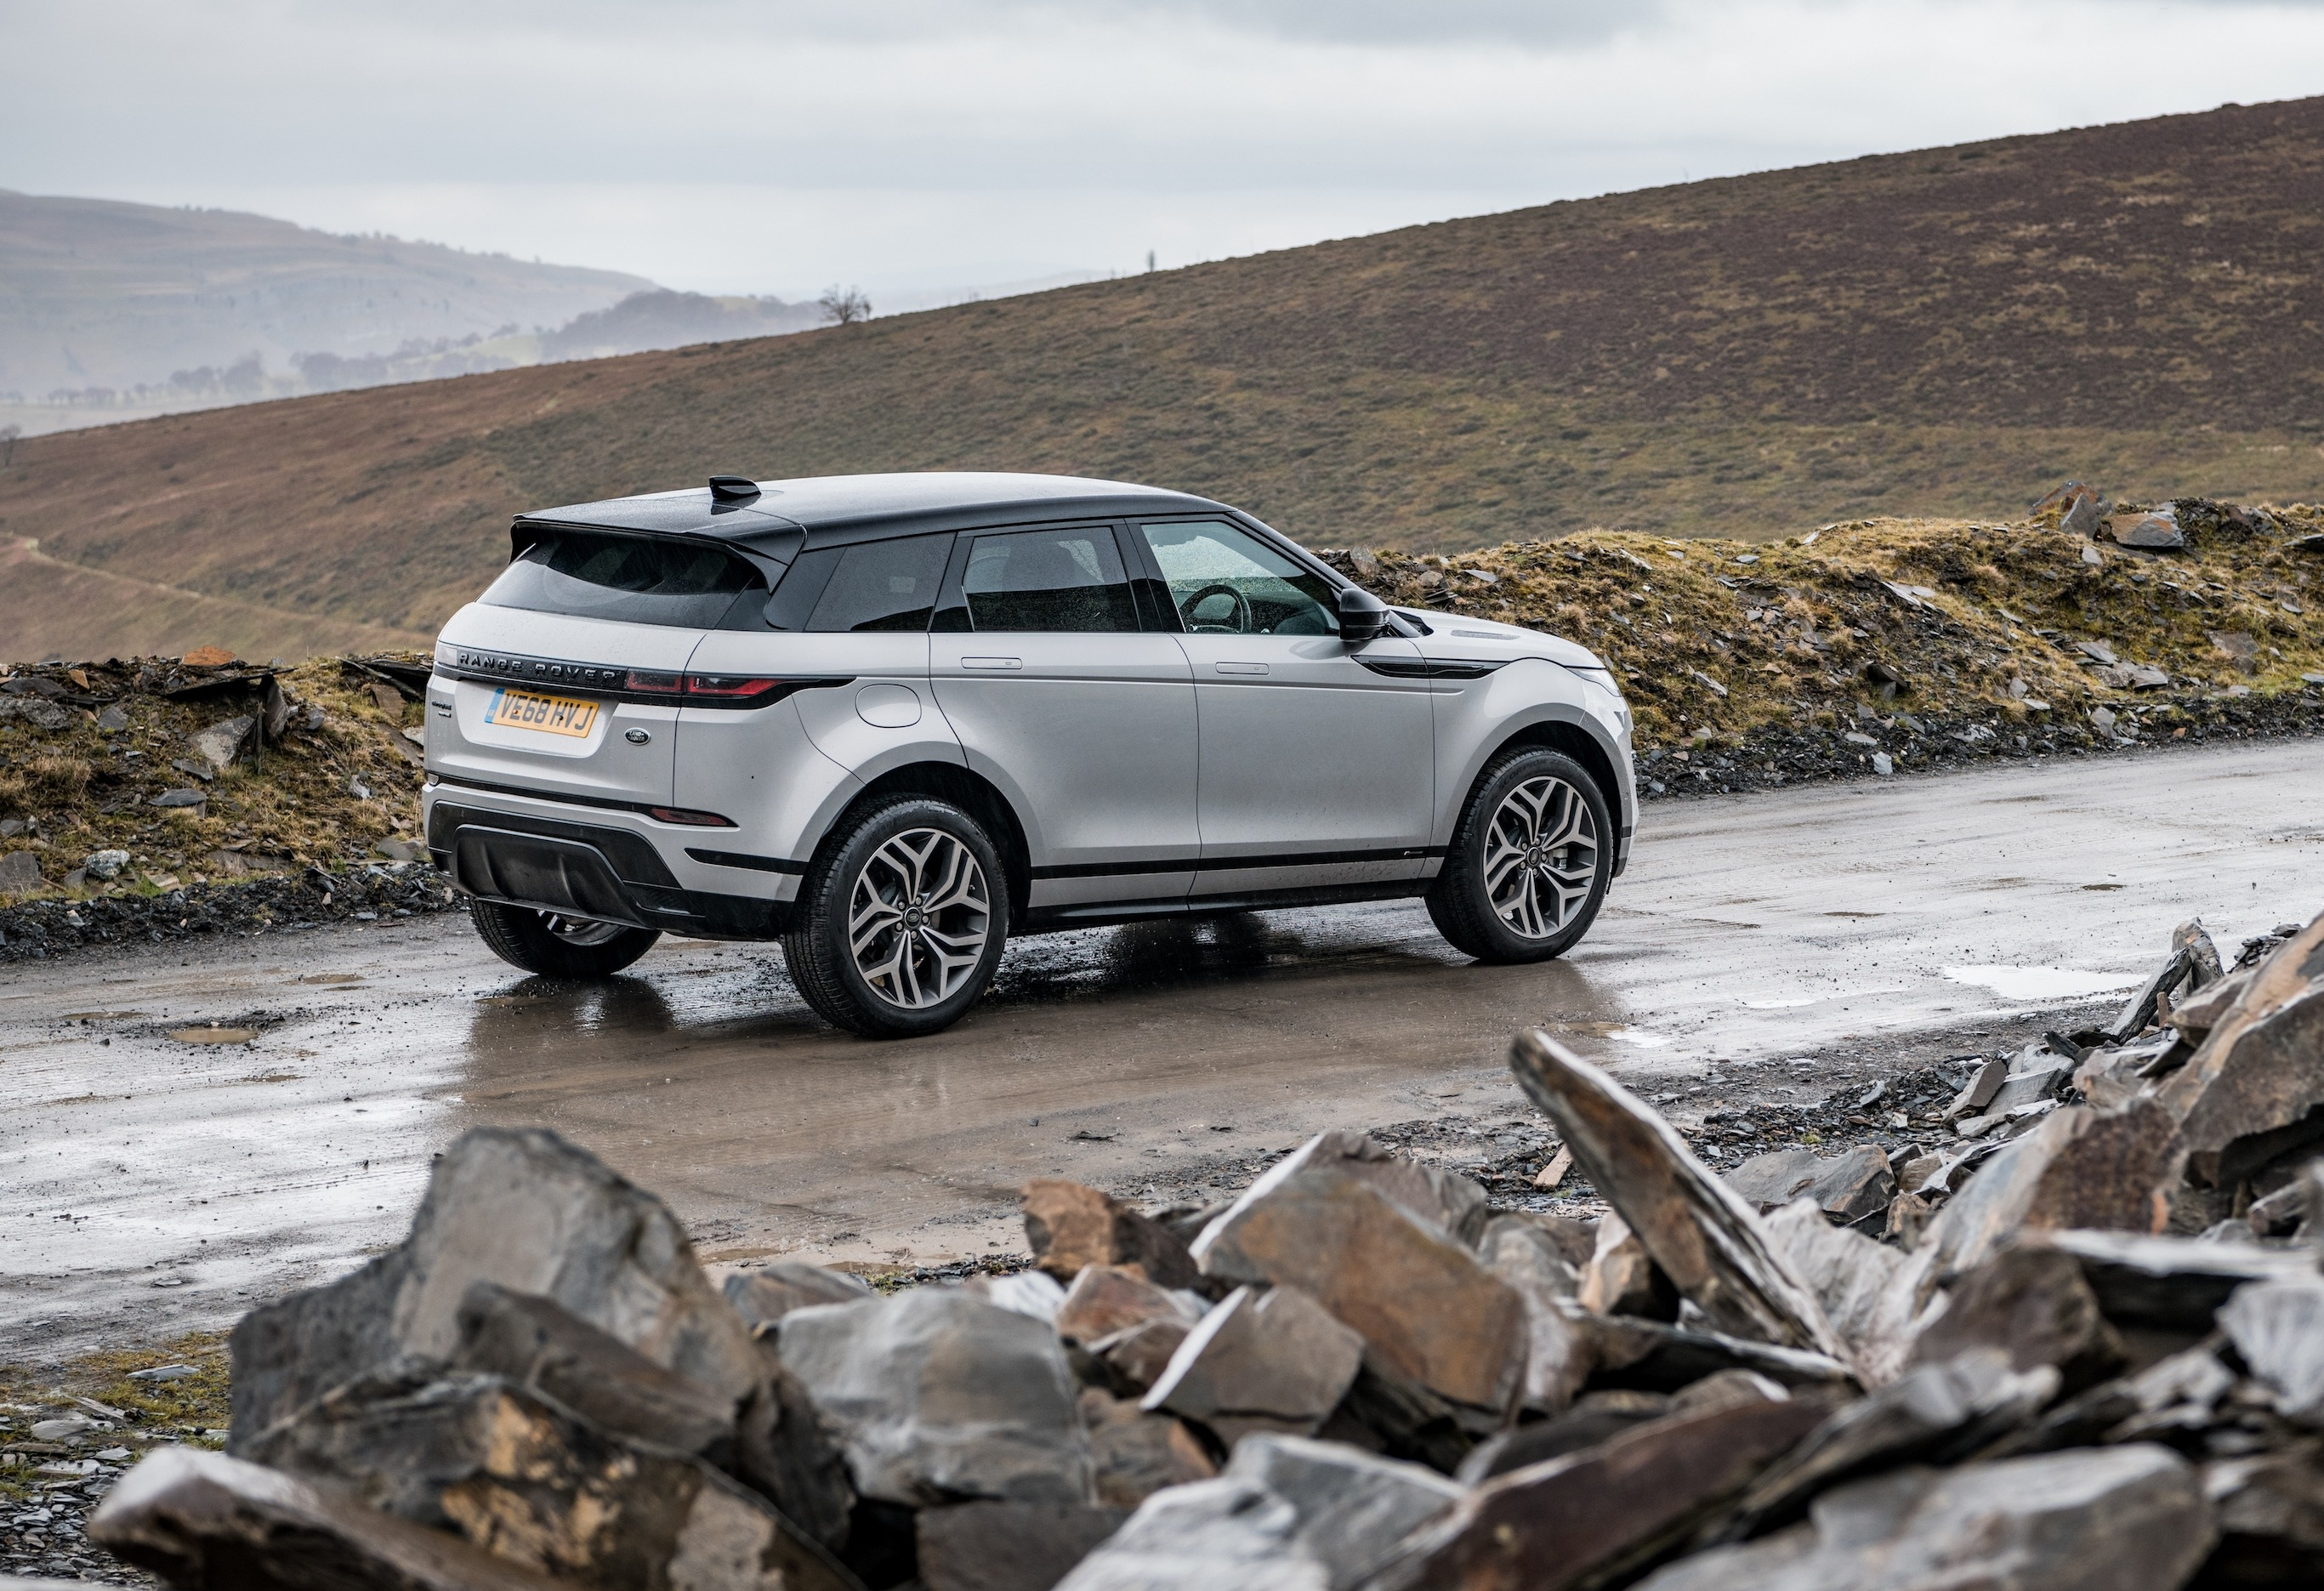 Range Rover's new Evoque review: 'a bit of a revelation' - Spear's